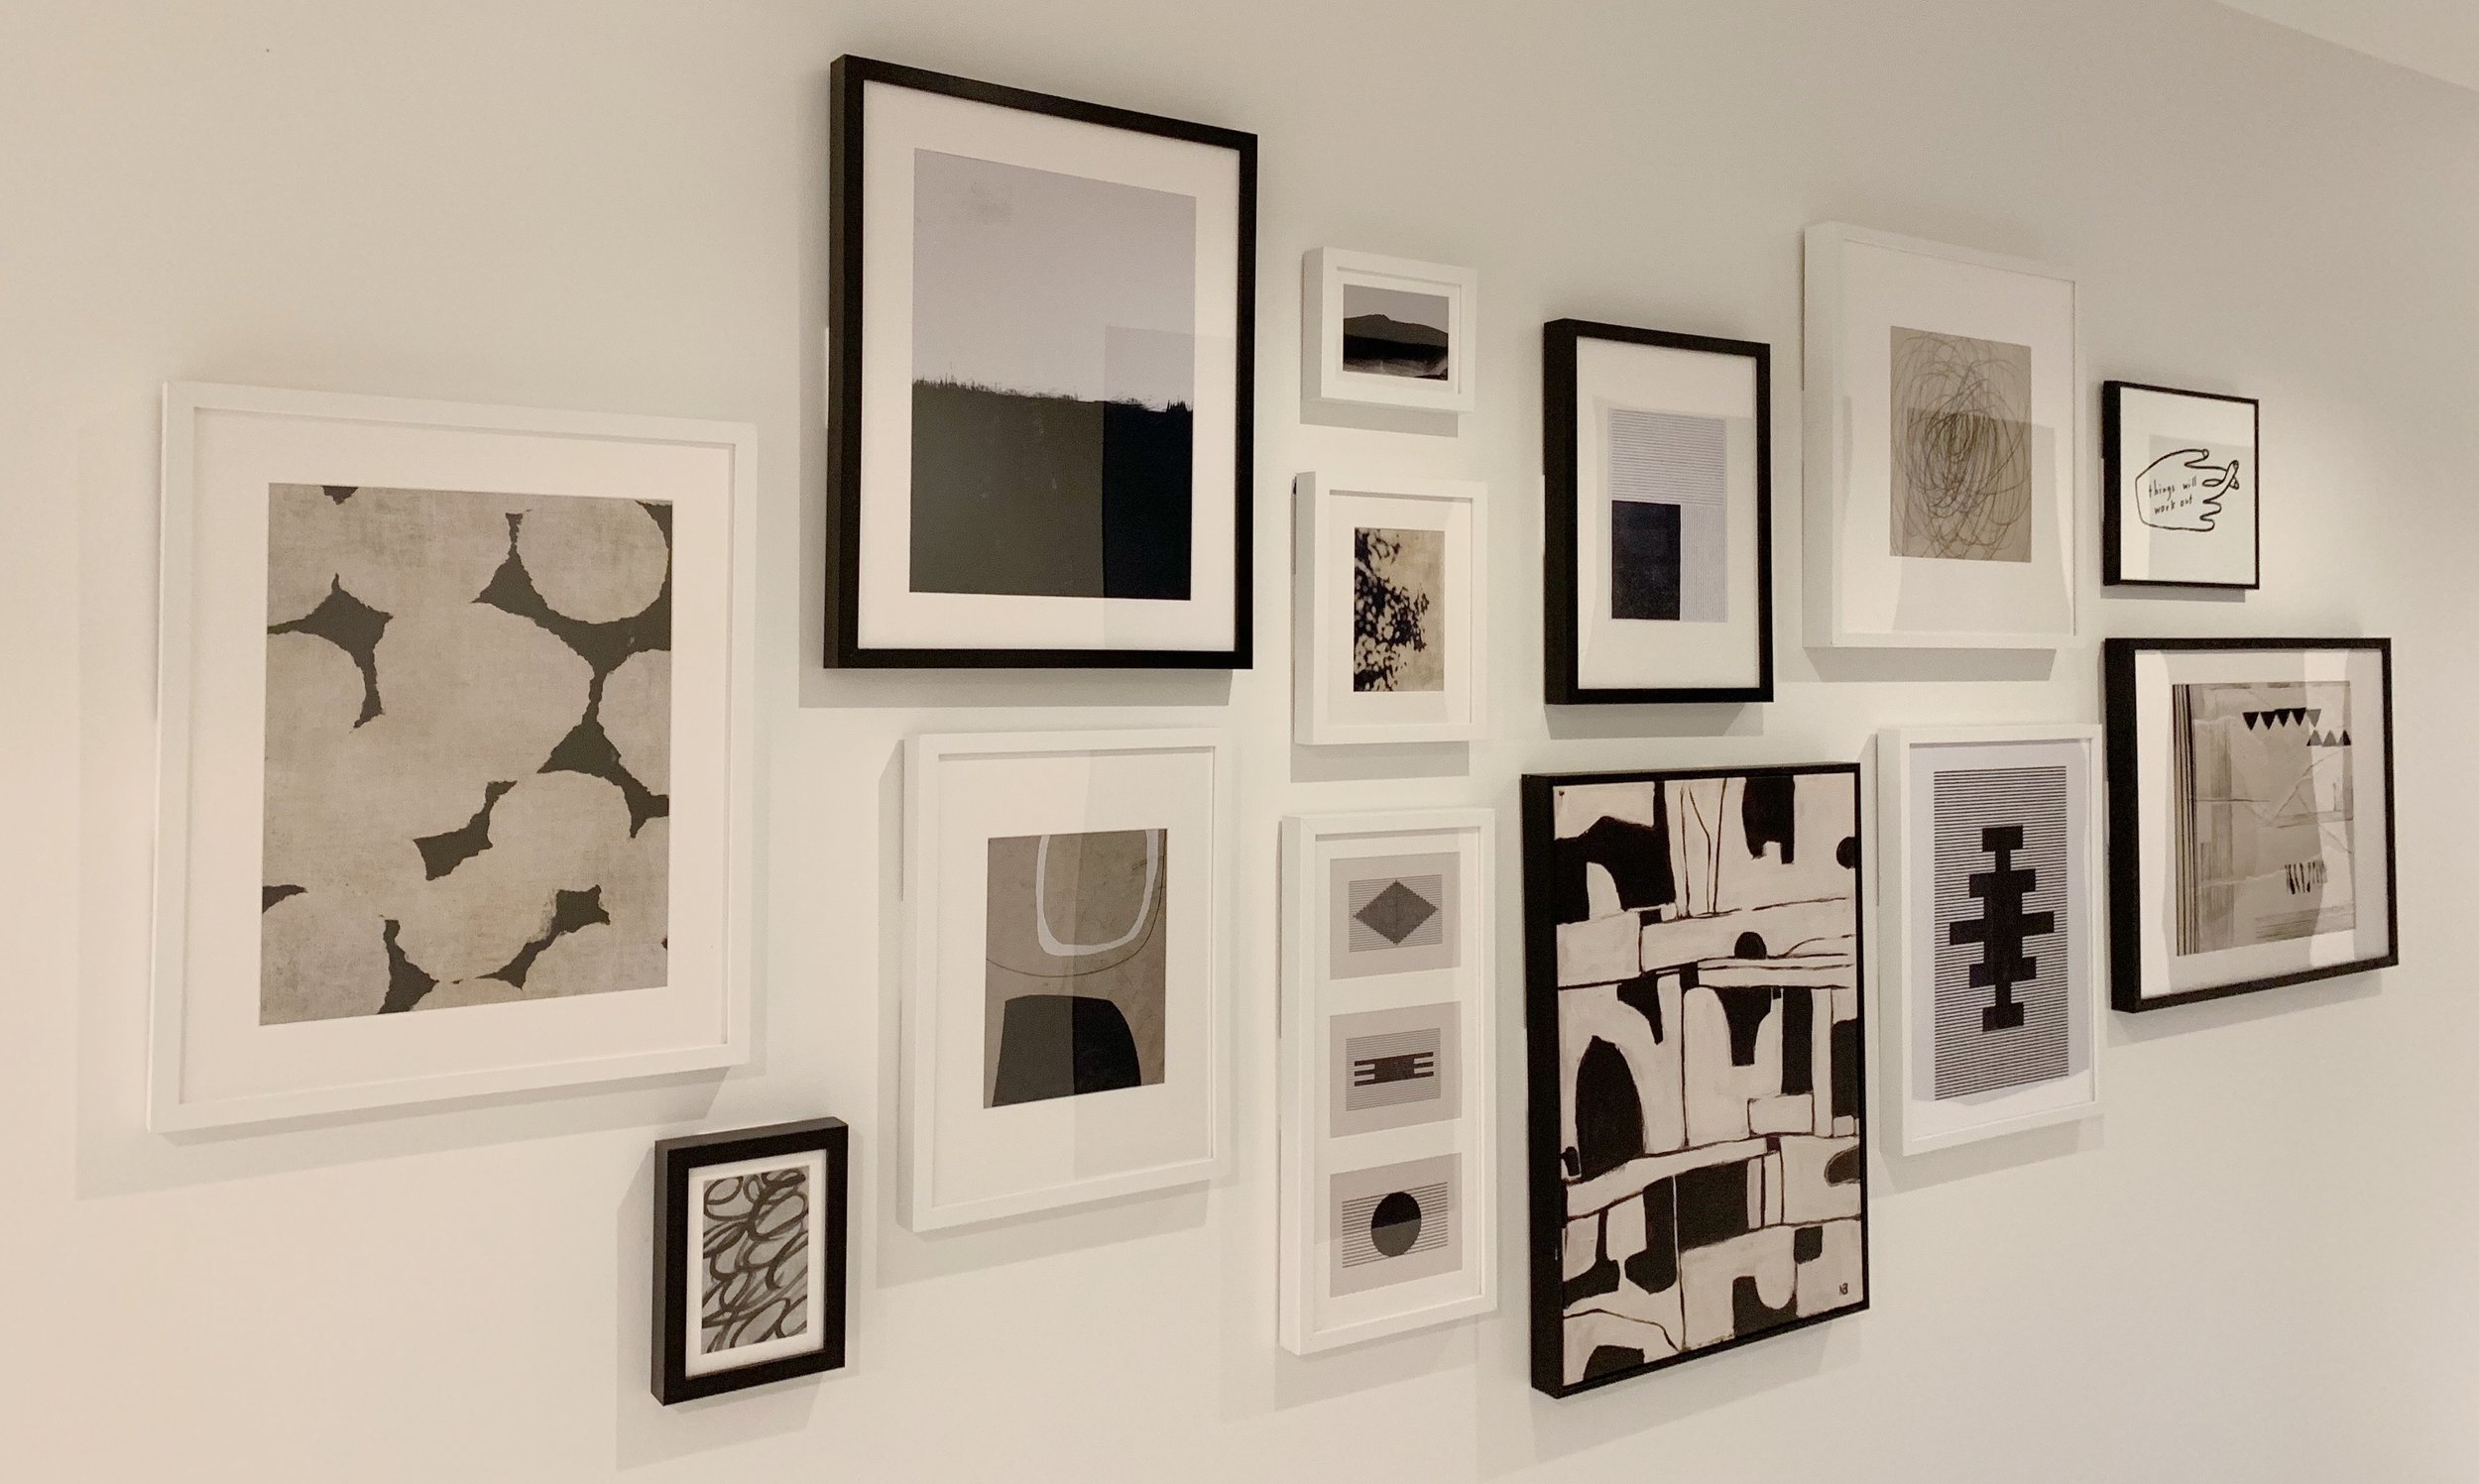 A crappy iPhone photo to show you this gallery wall as a whole!